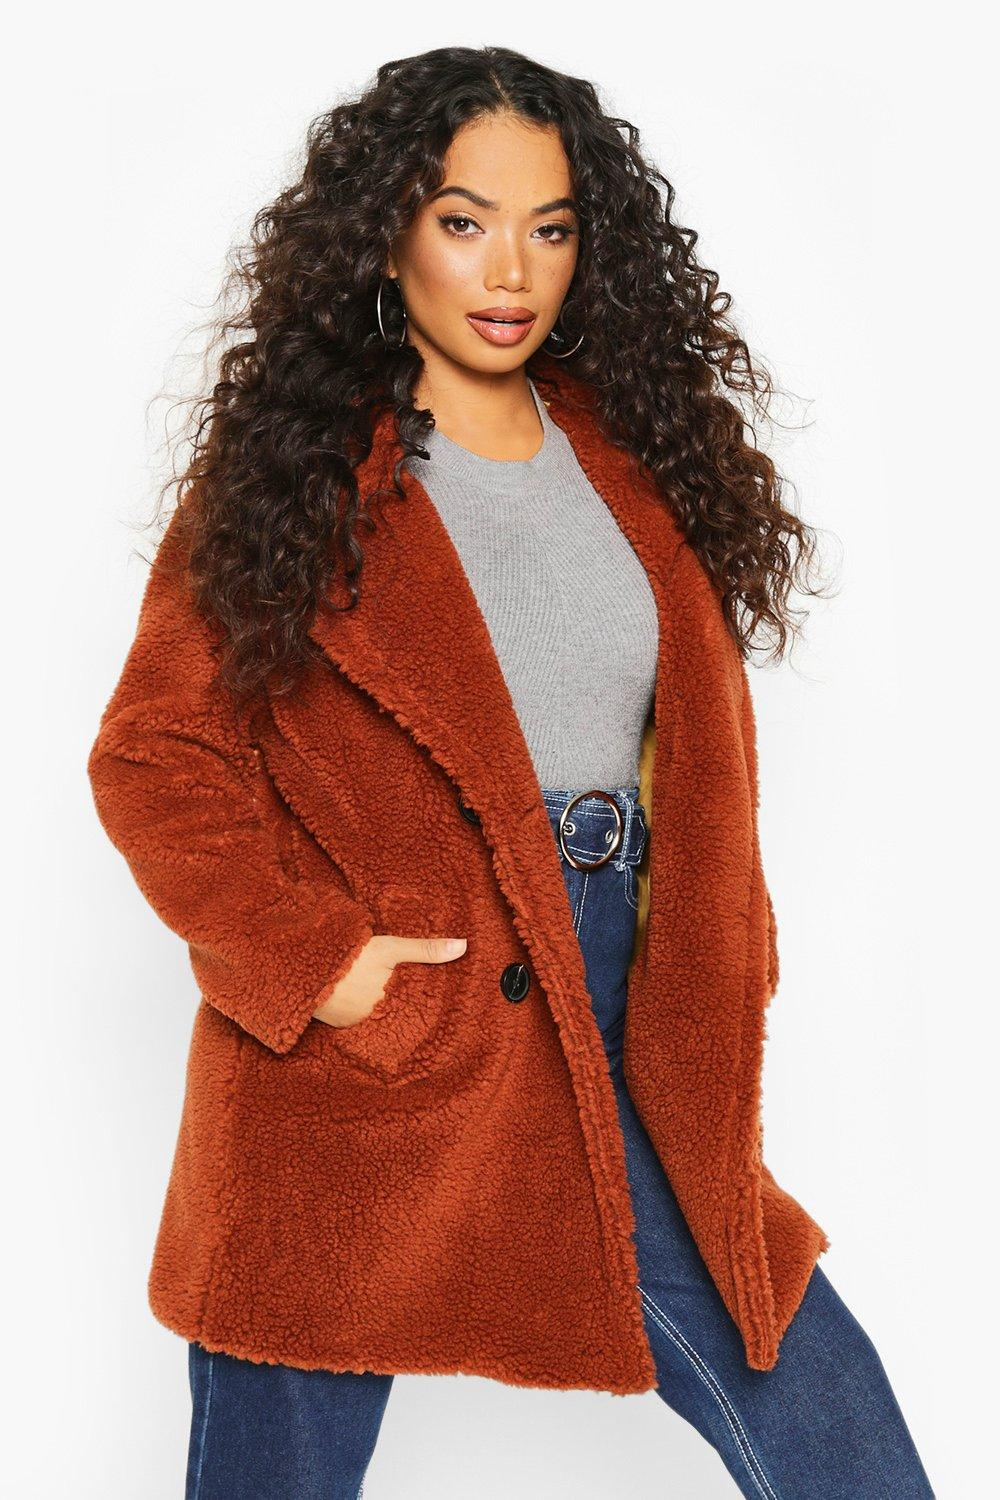 boohoo Womens Petite Double Breasted Teddy Coat - Orange - 4, Orange